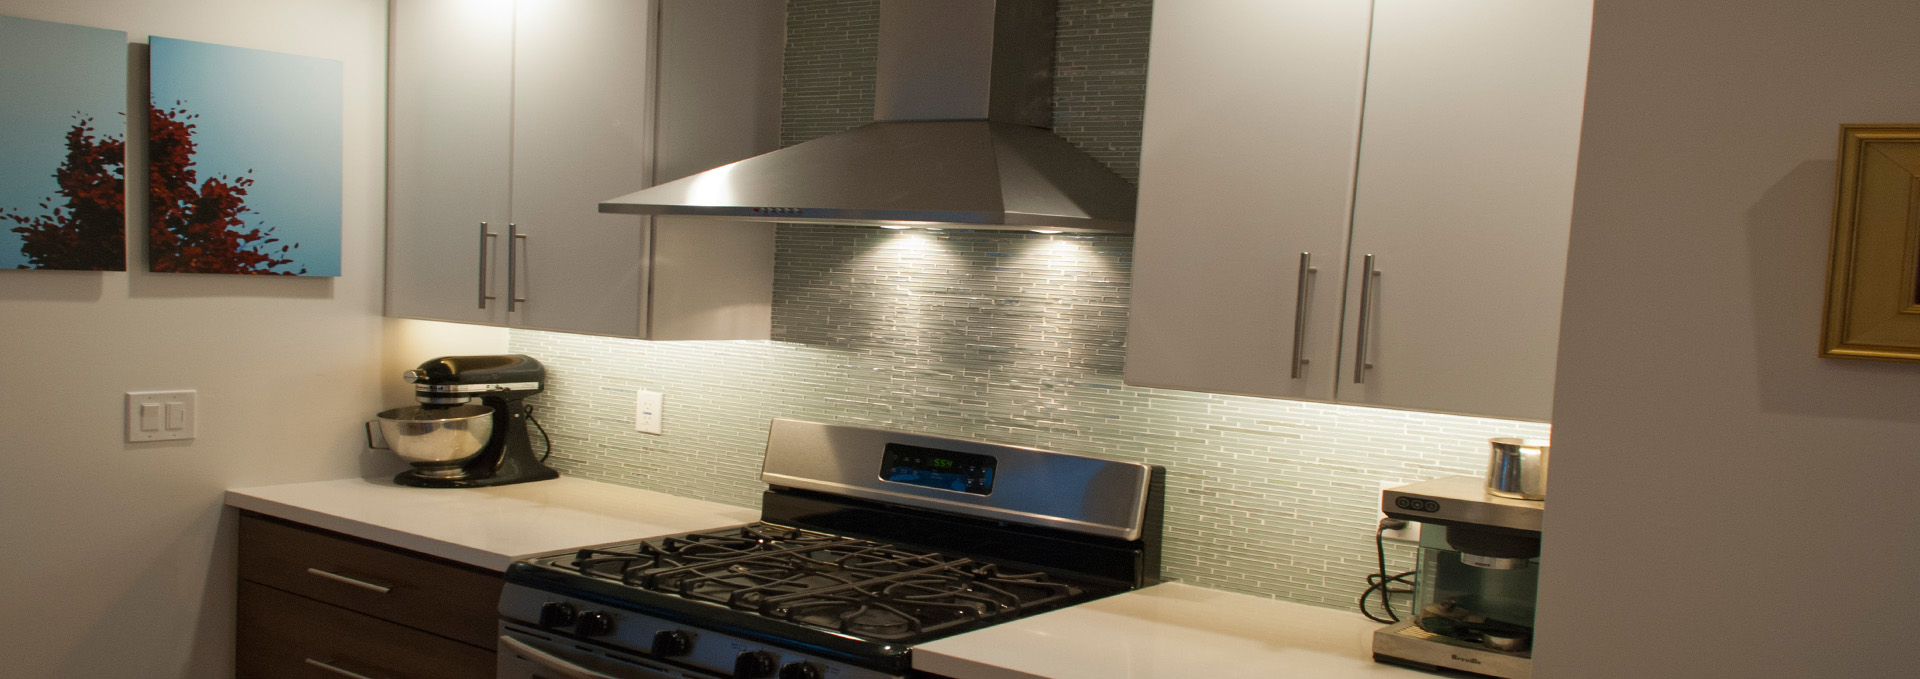 cabinet ductless range hood under best quiet design hoodductless phenomenal images